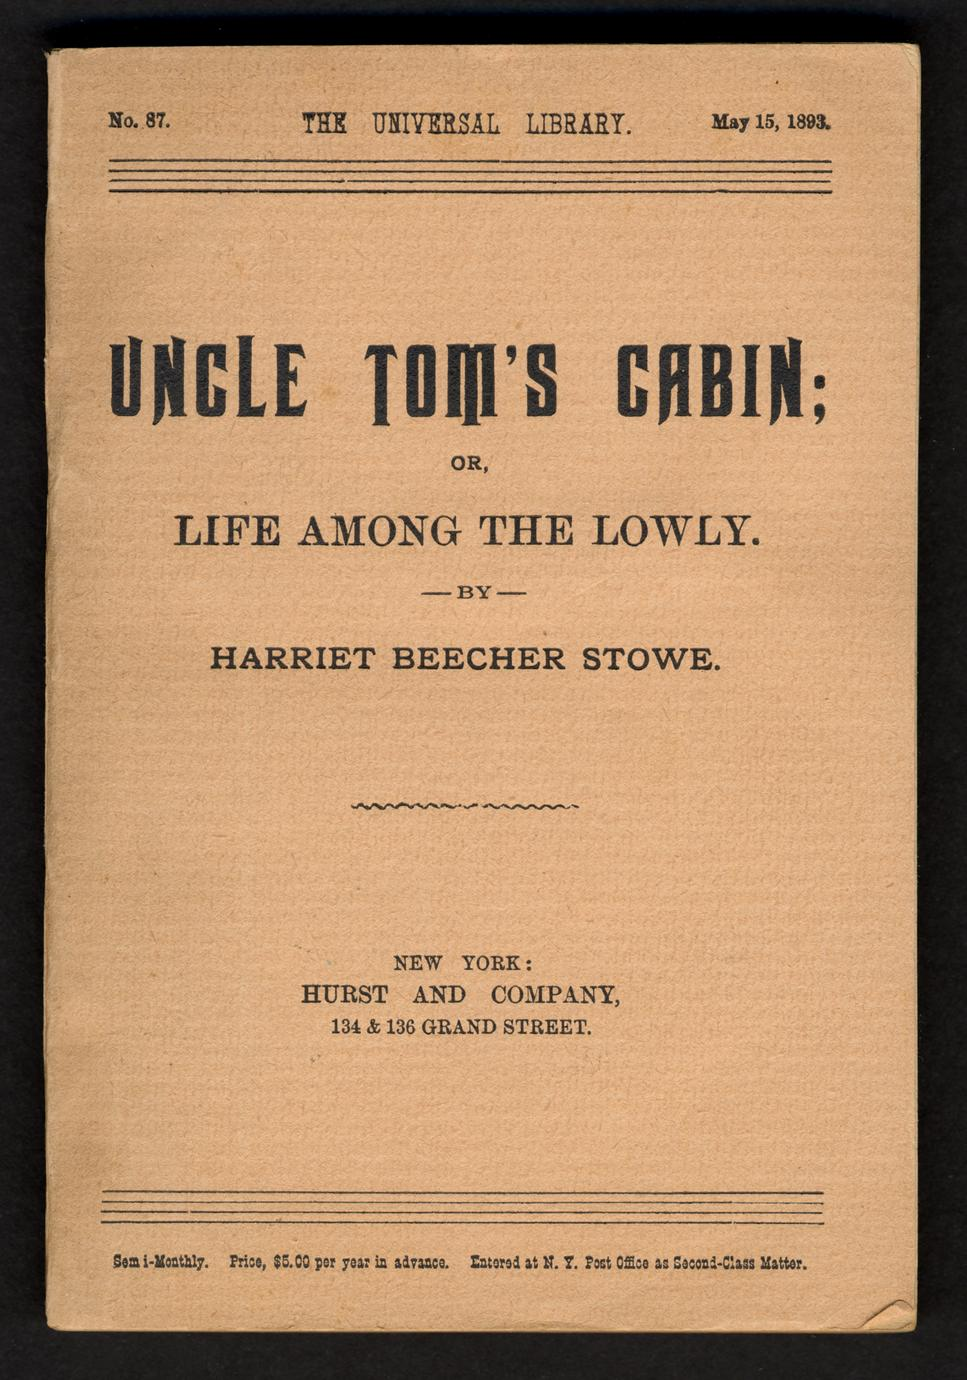 Uncle Tom's cabin; or, Life among the lowly (1 of 3)